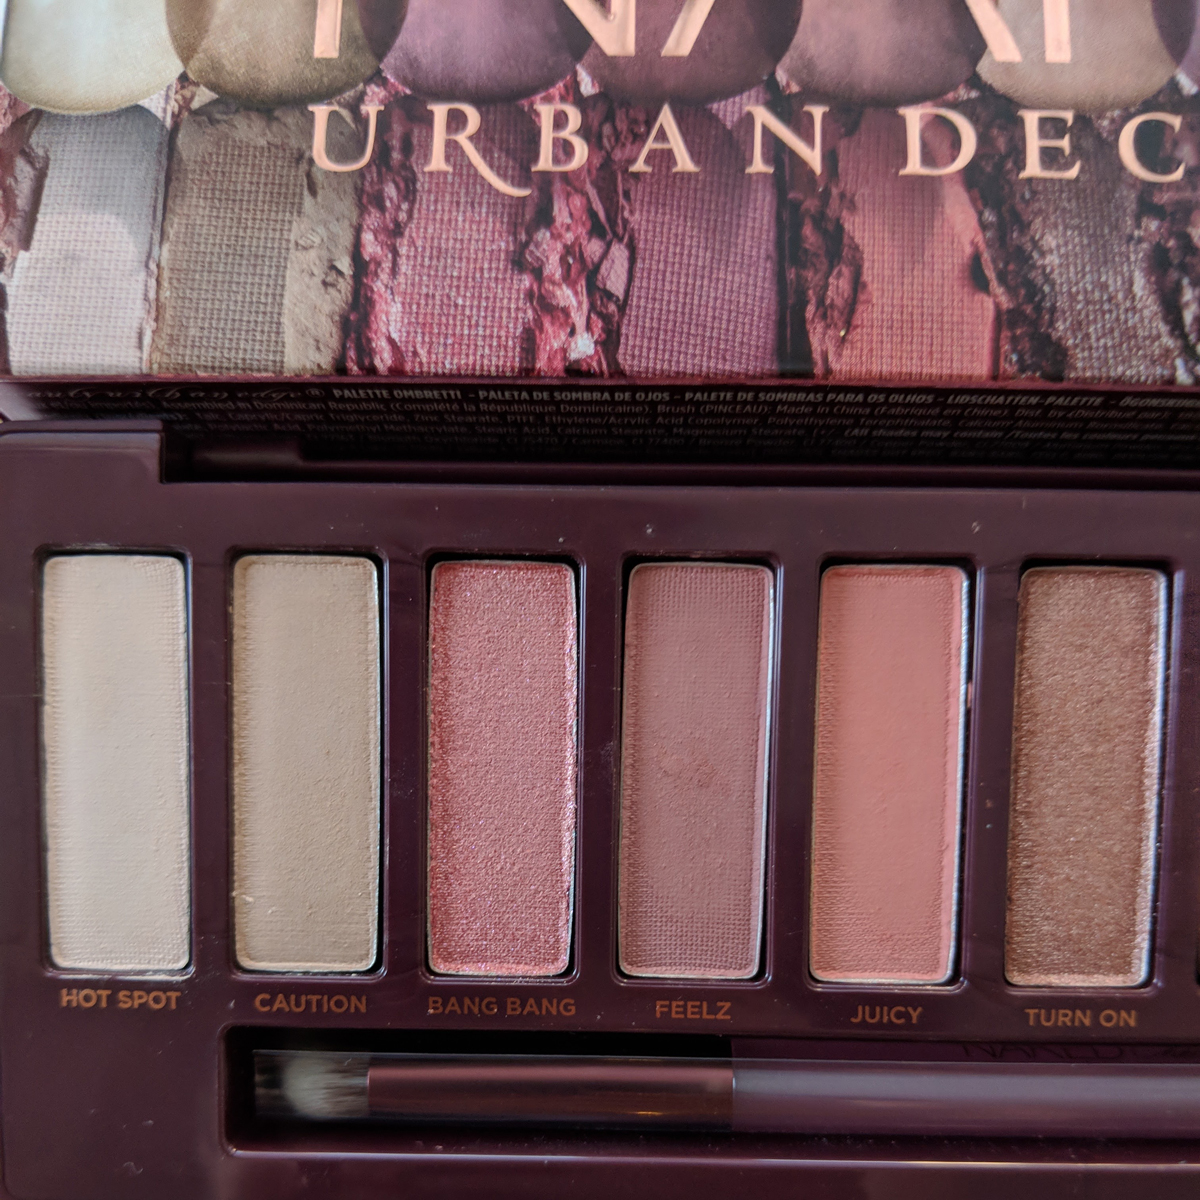 urban-decay-naked-cherry-eyeshadow-palette-review-zoom-left